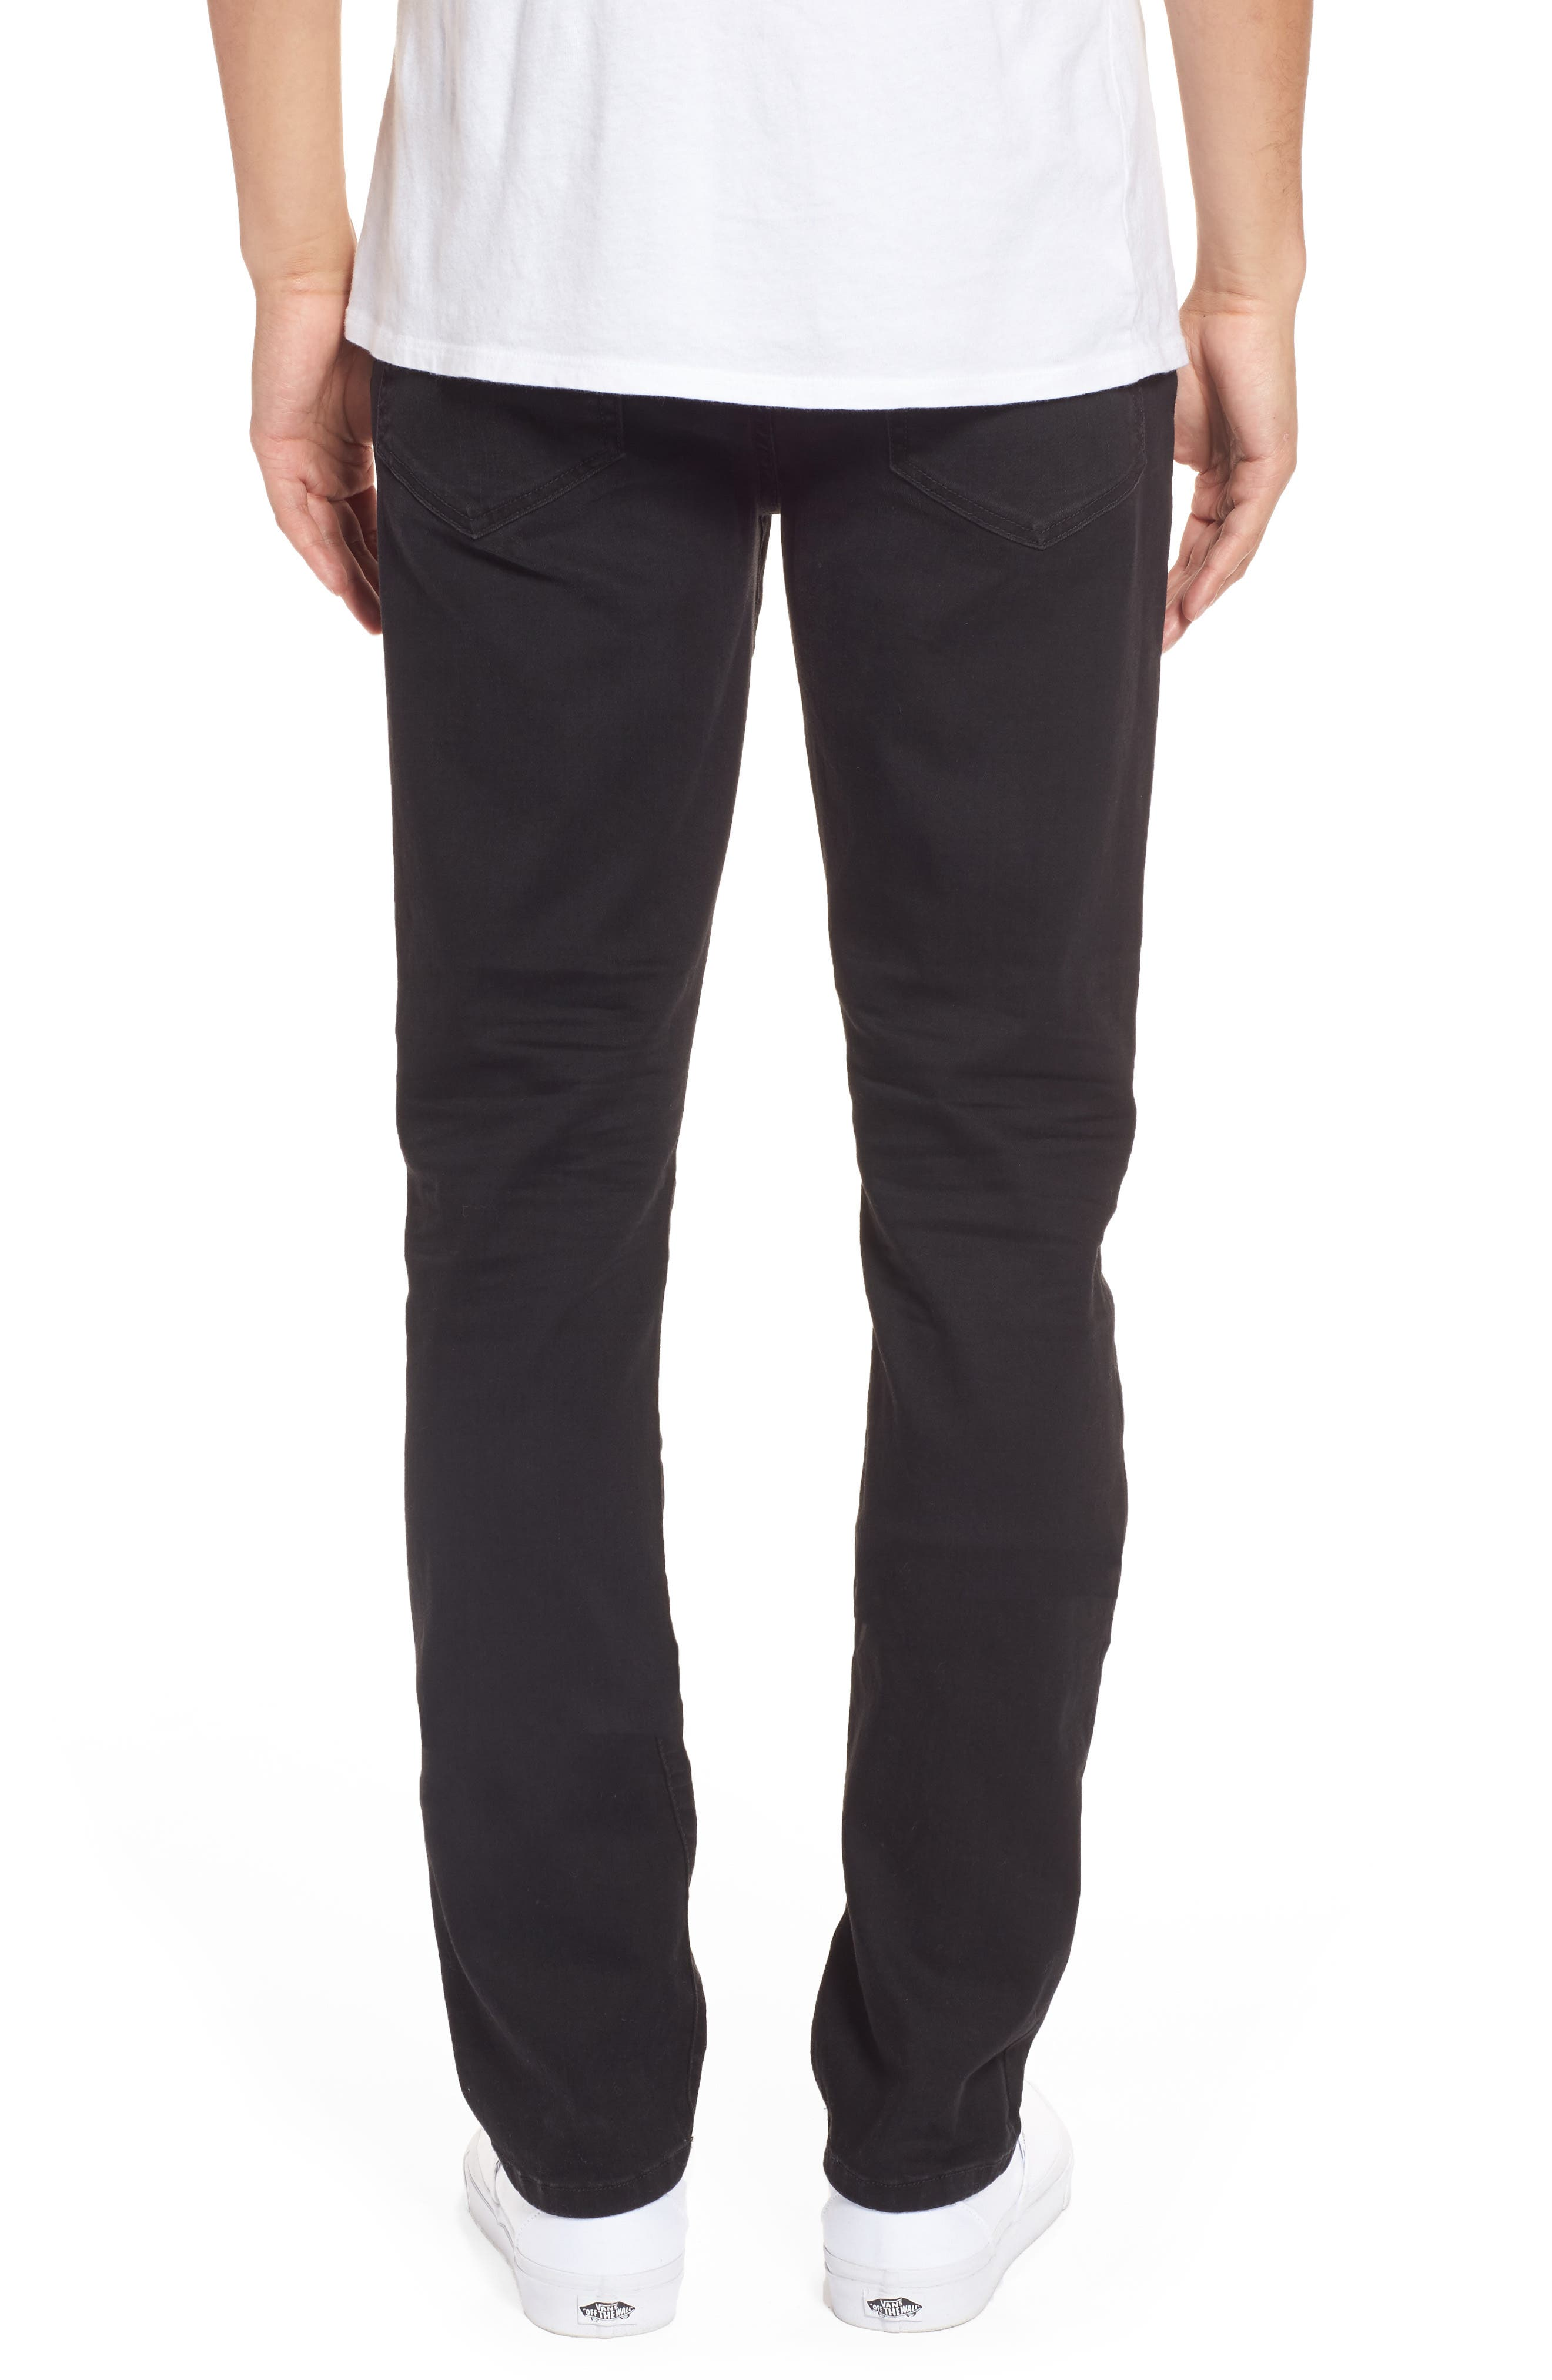 Soder Slouchy Skinny Jeans,                             Alternate thumbnail 2, color,                             Diggie